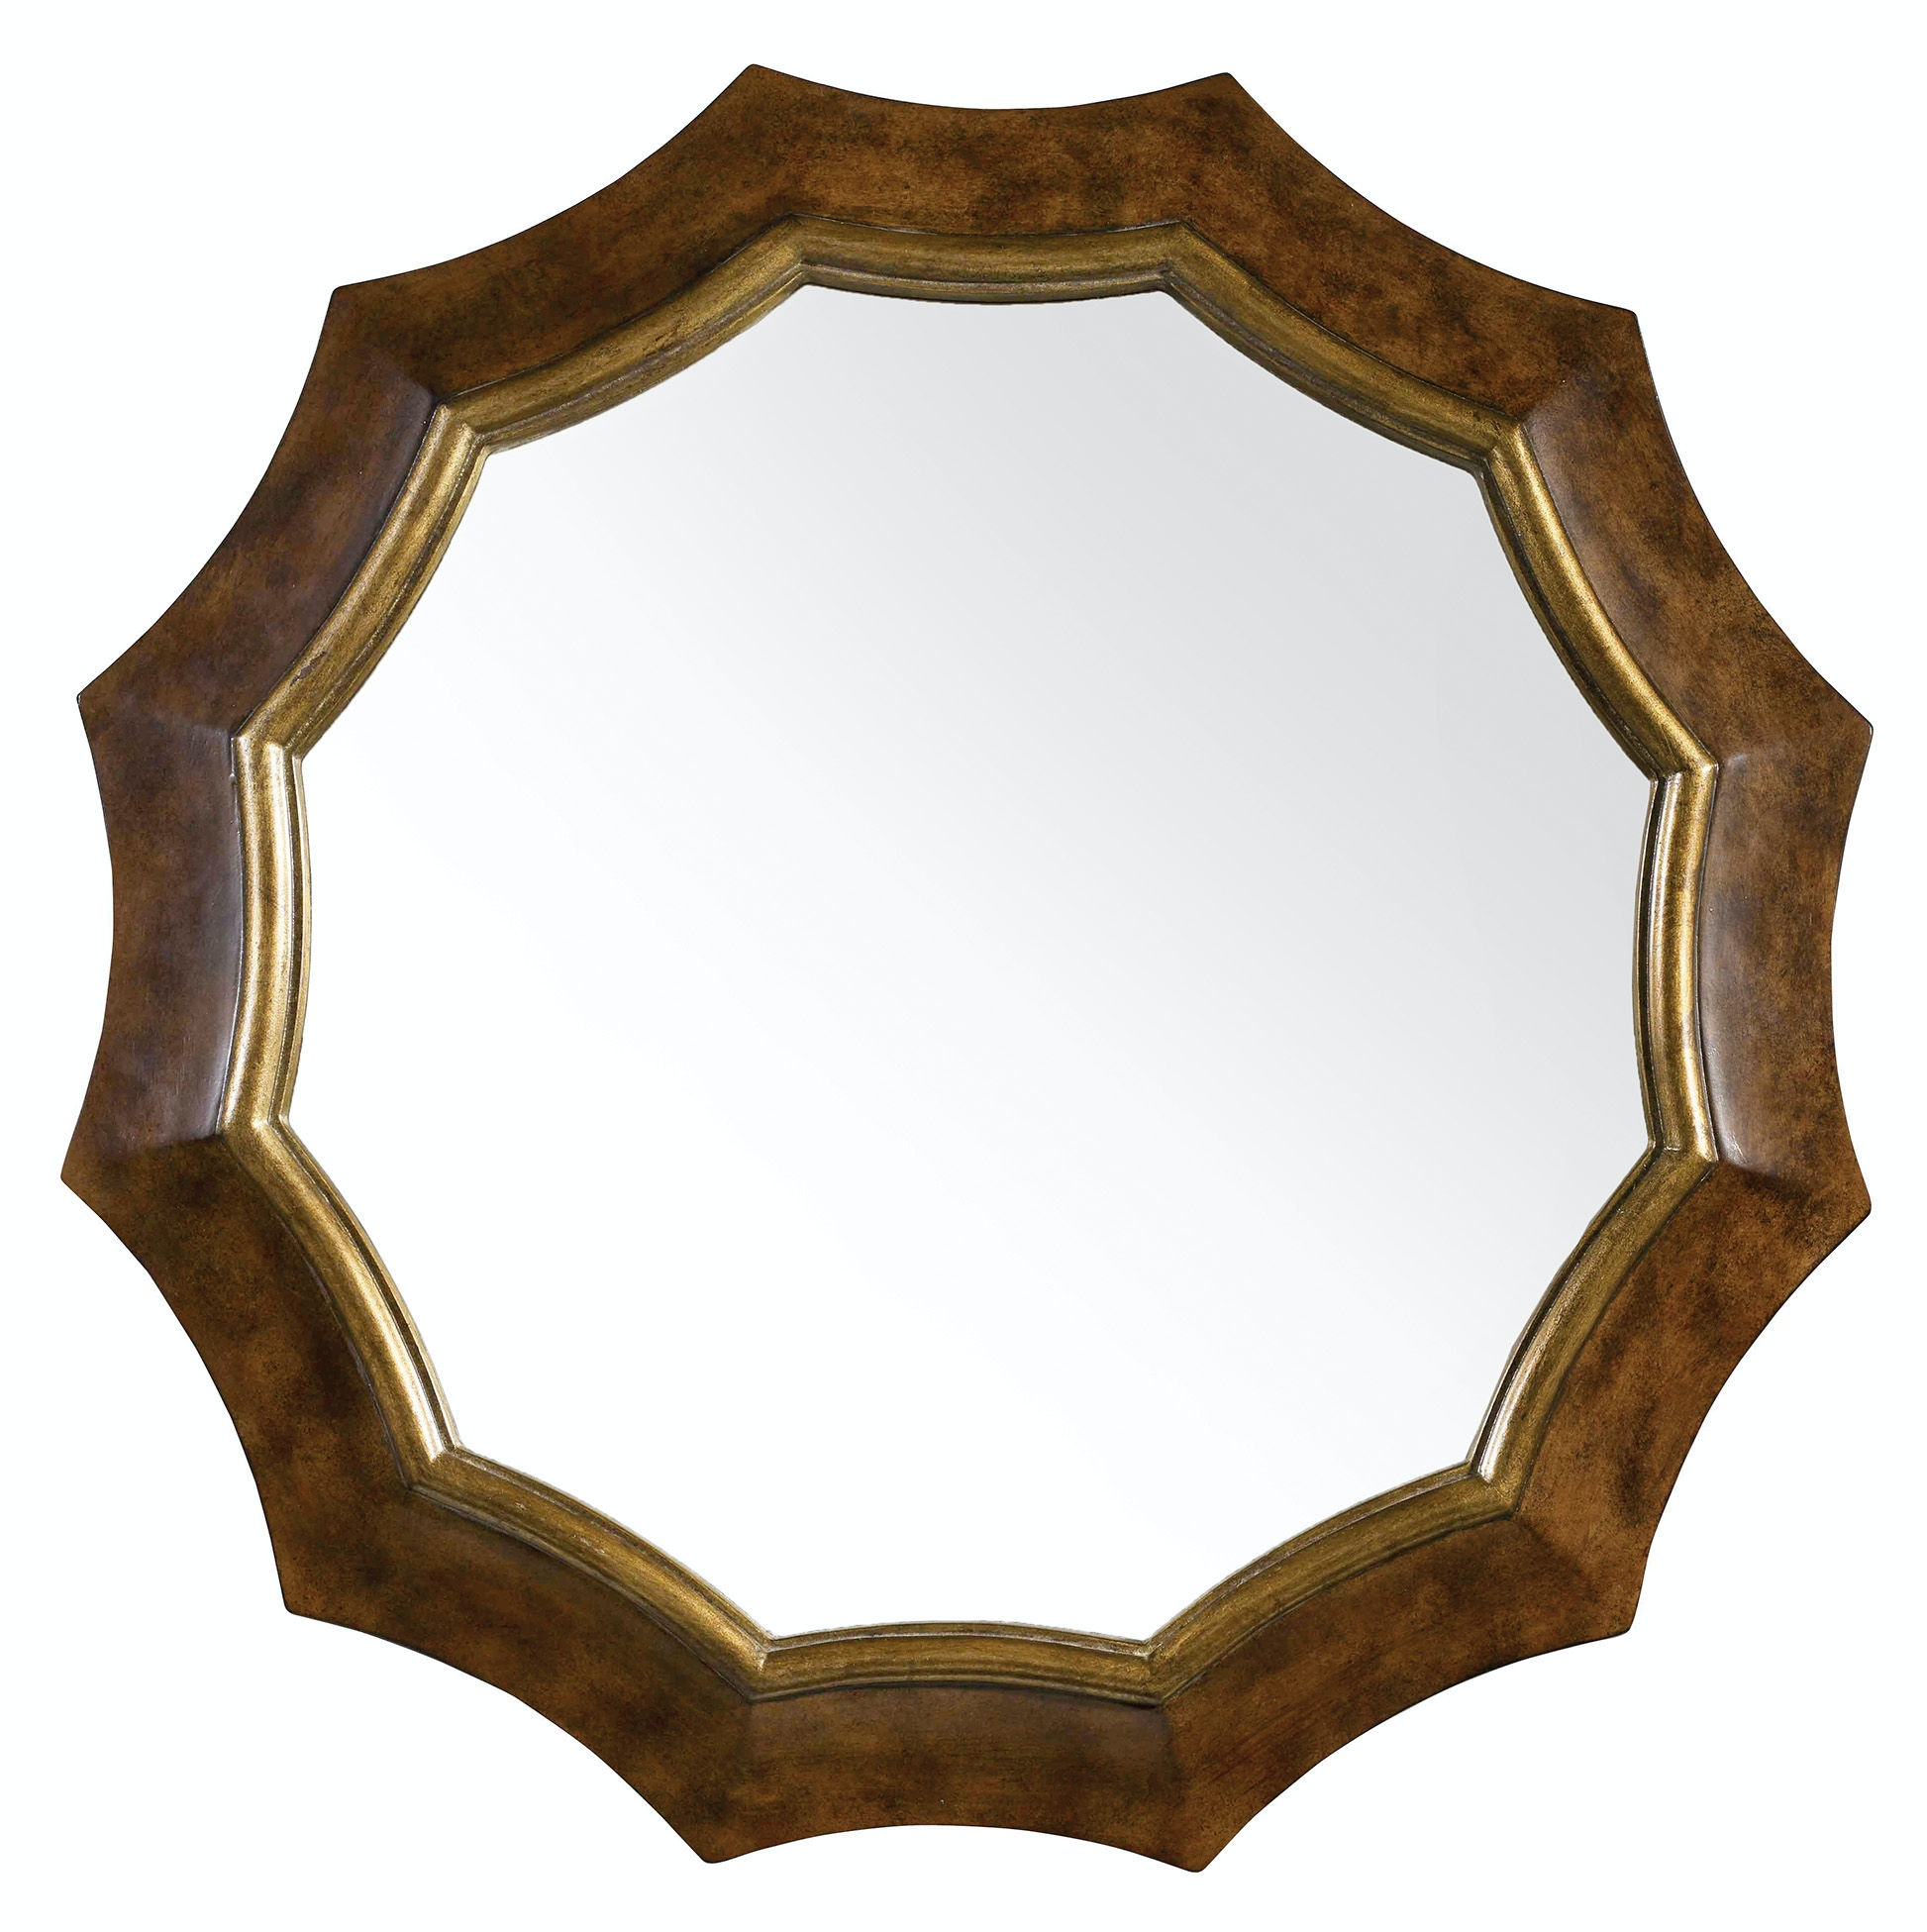 Hooker Furniture Archivist Accent Mirror 5447 90009